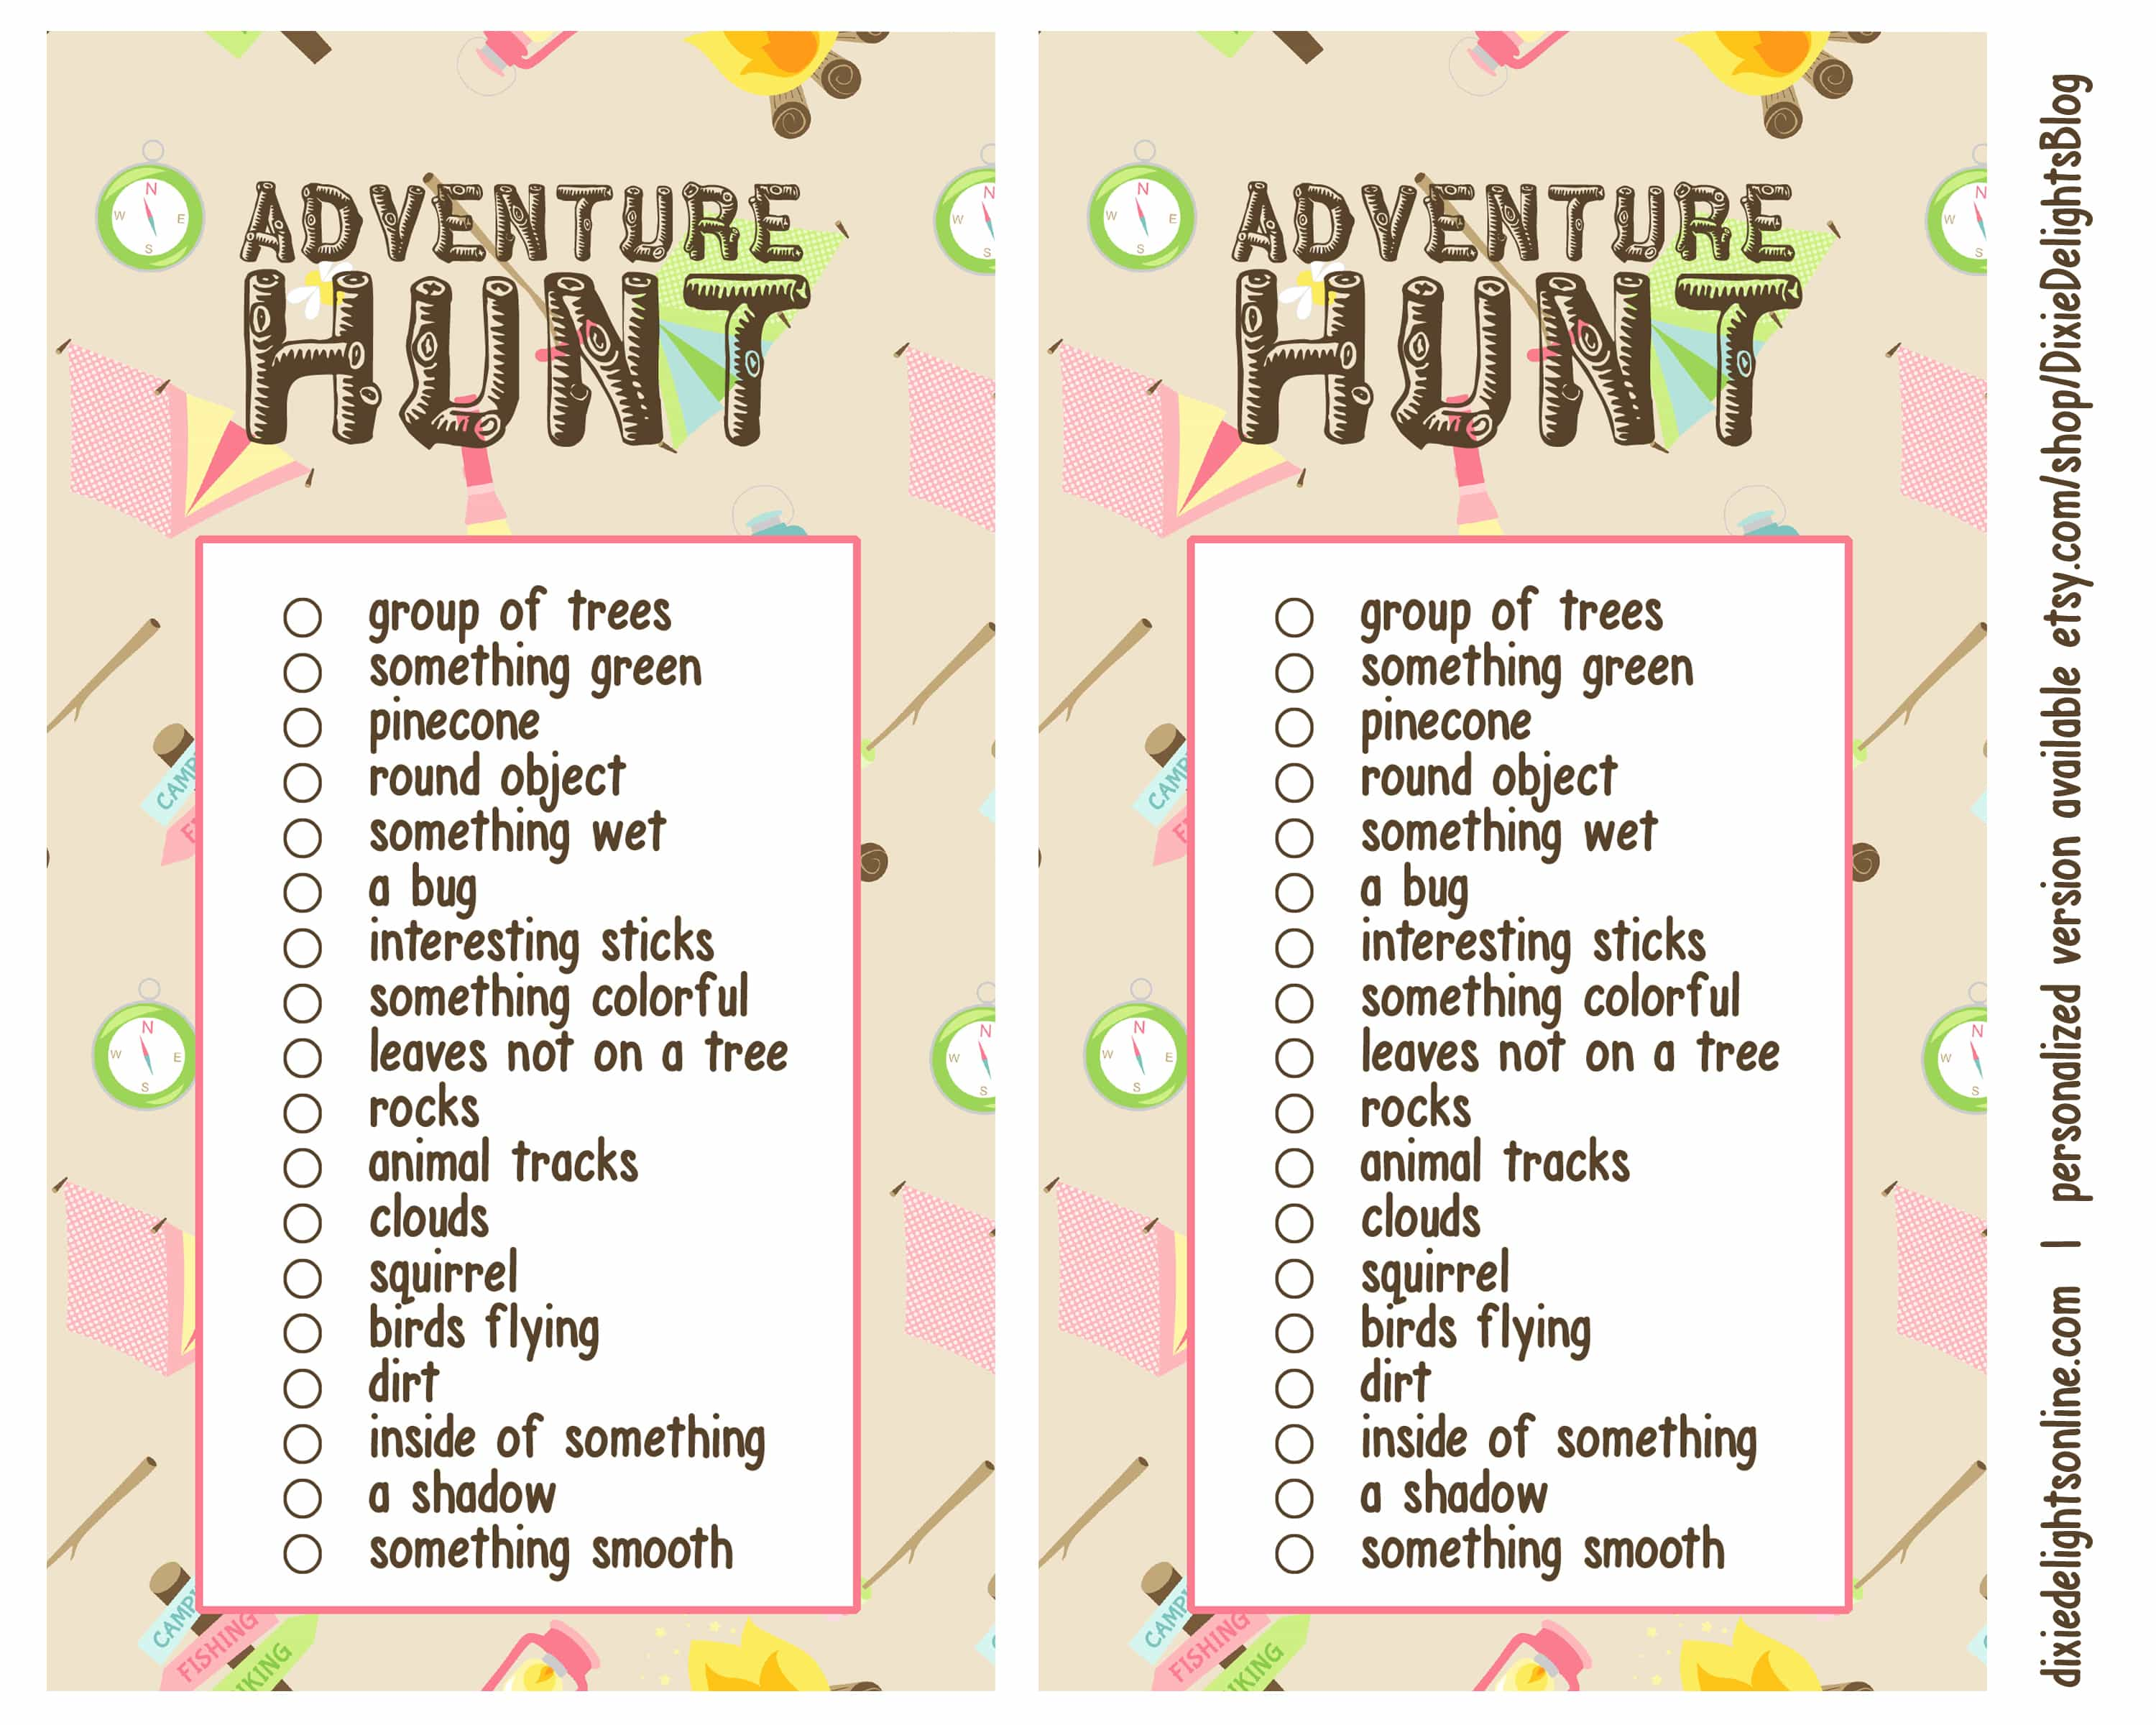 photograph regarding Camping Scavenger Hunt Printable titled Experience Hunt Out of doors Scavenger Hunt Cost-free Printable